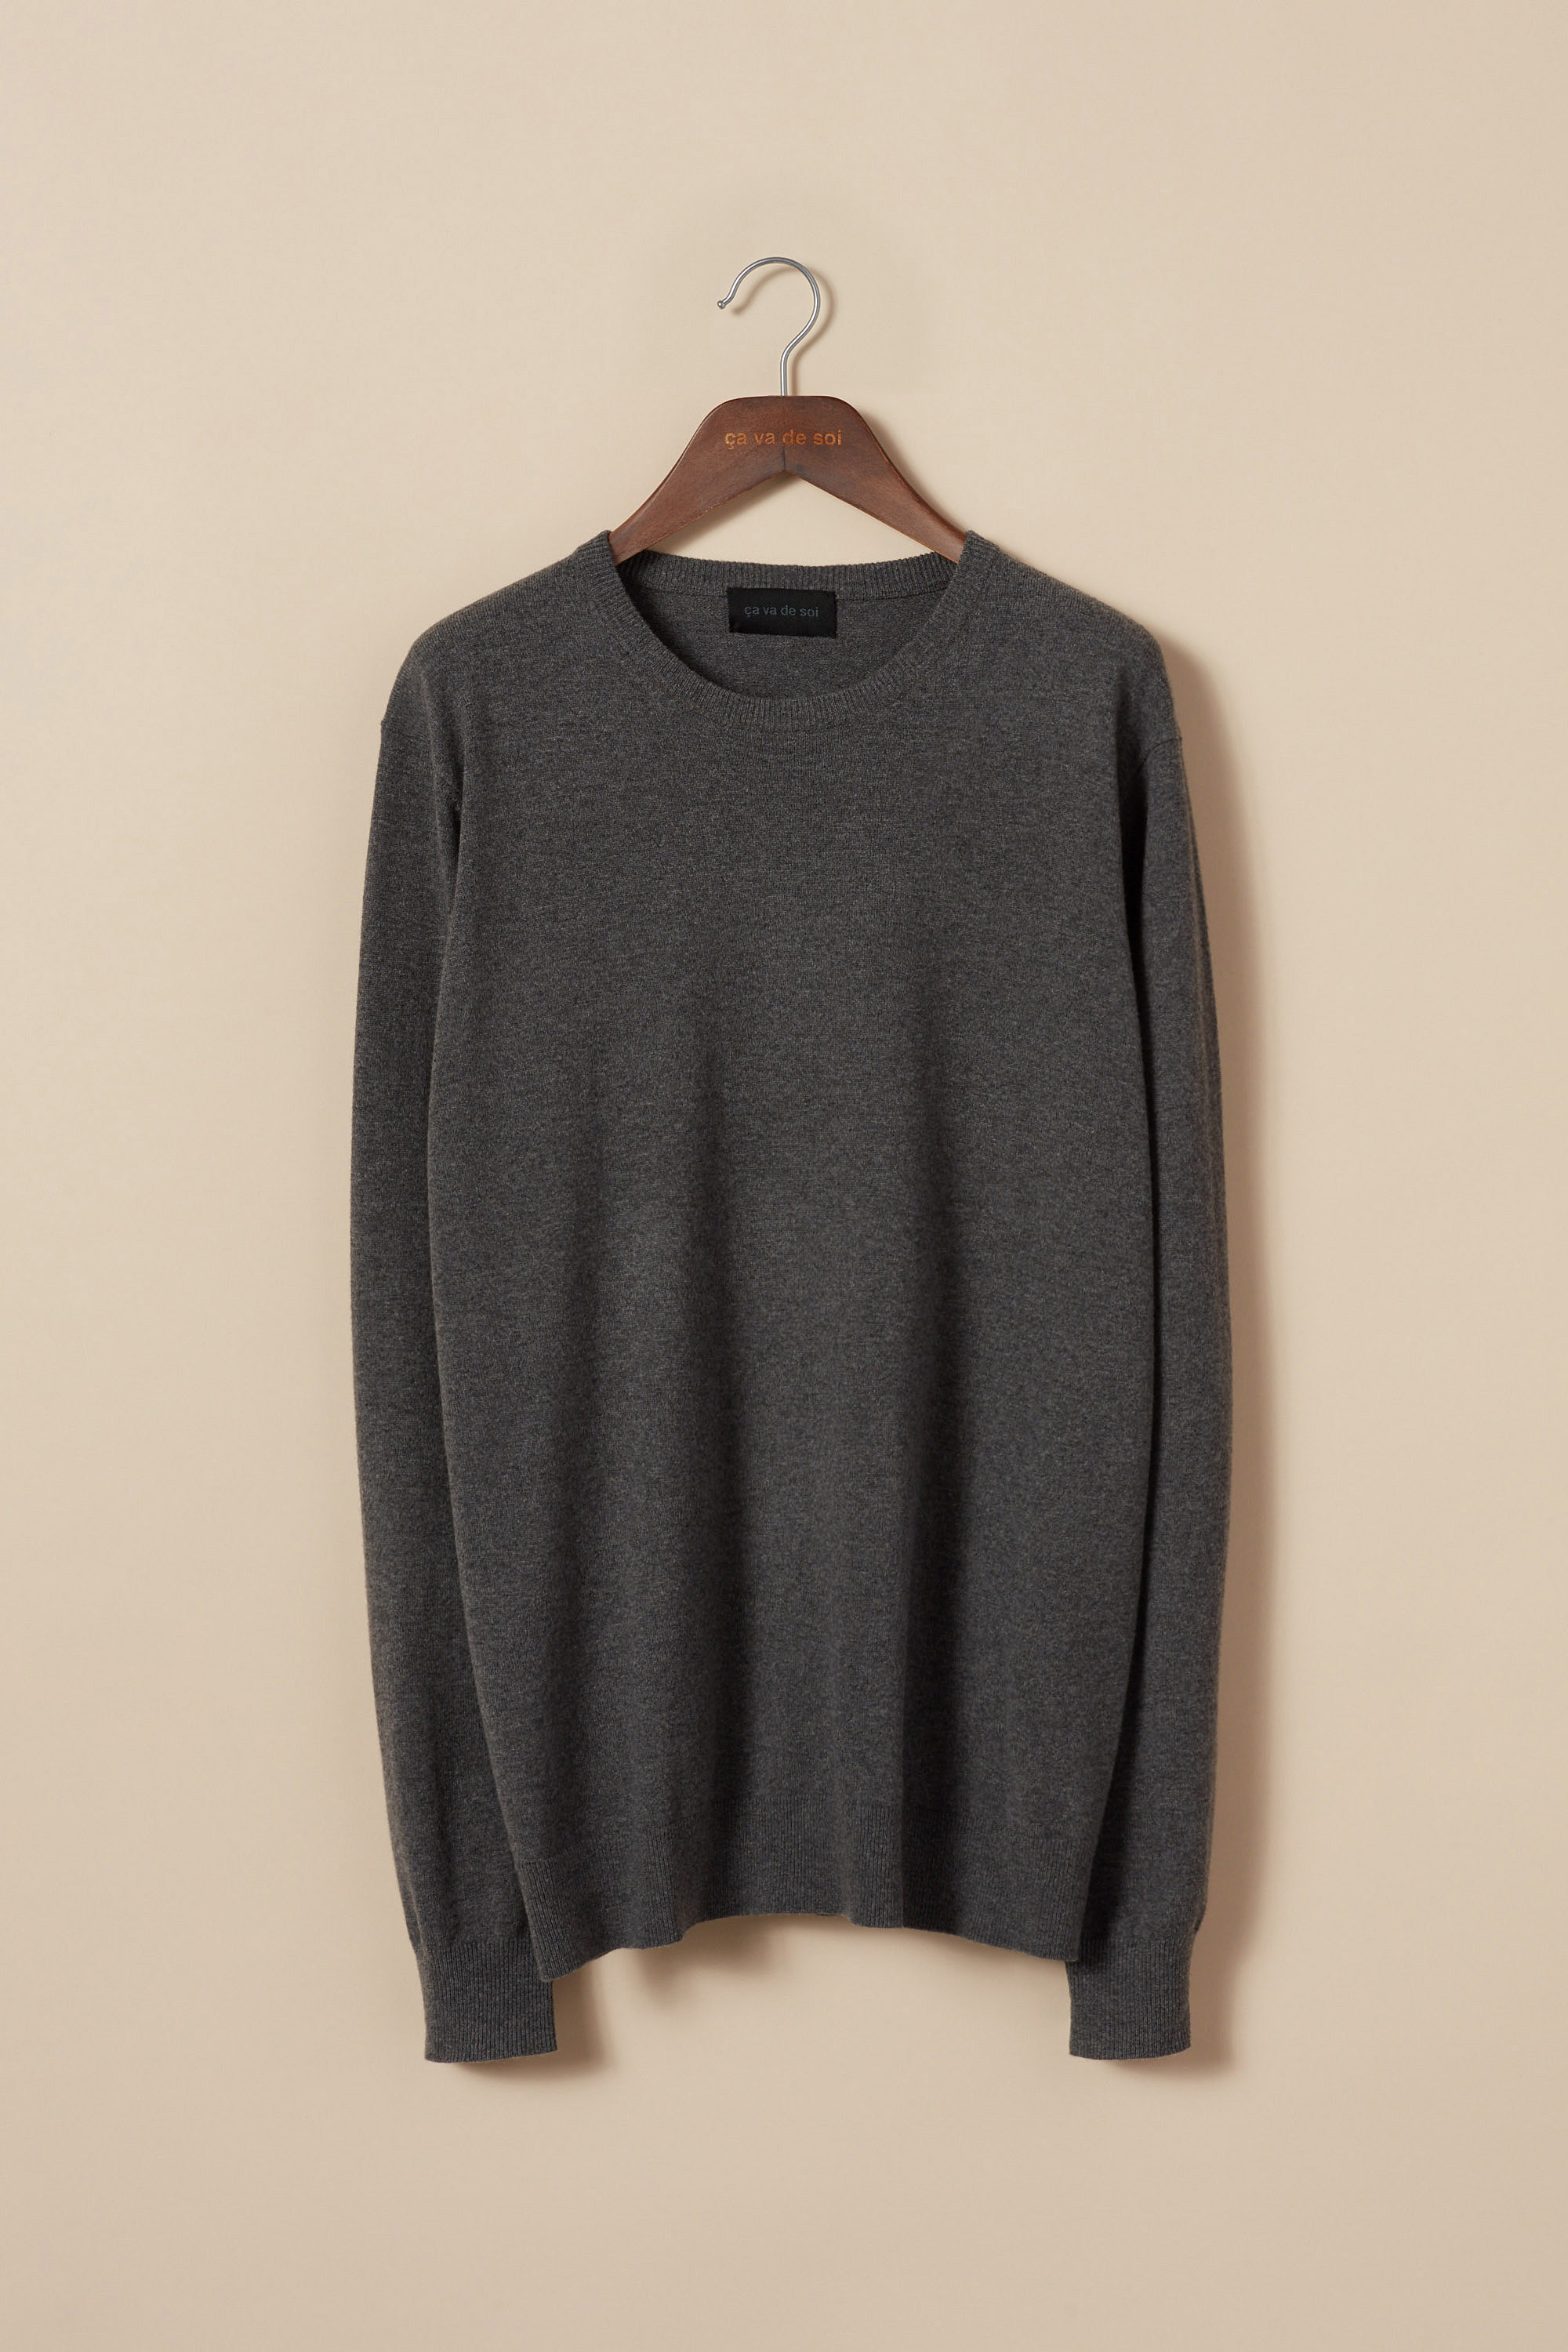 Classic crewneck sweater in finely carded merino wool